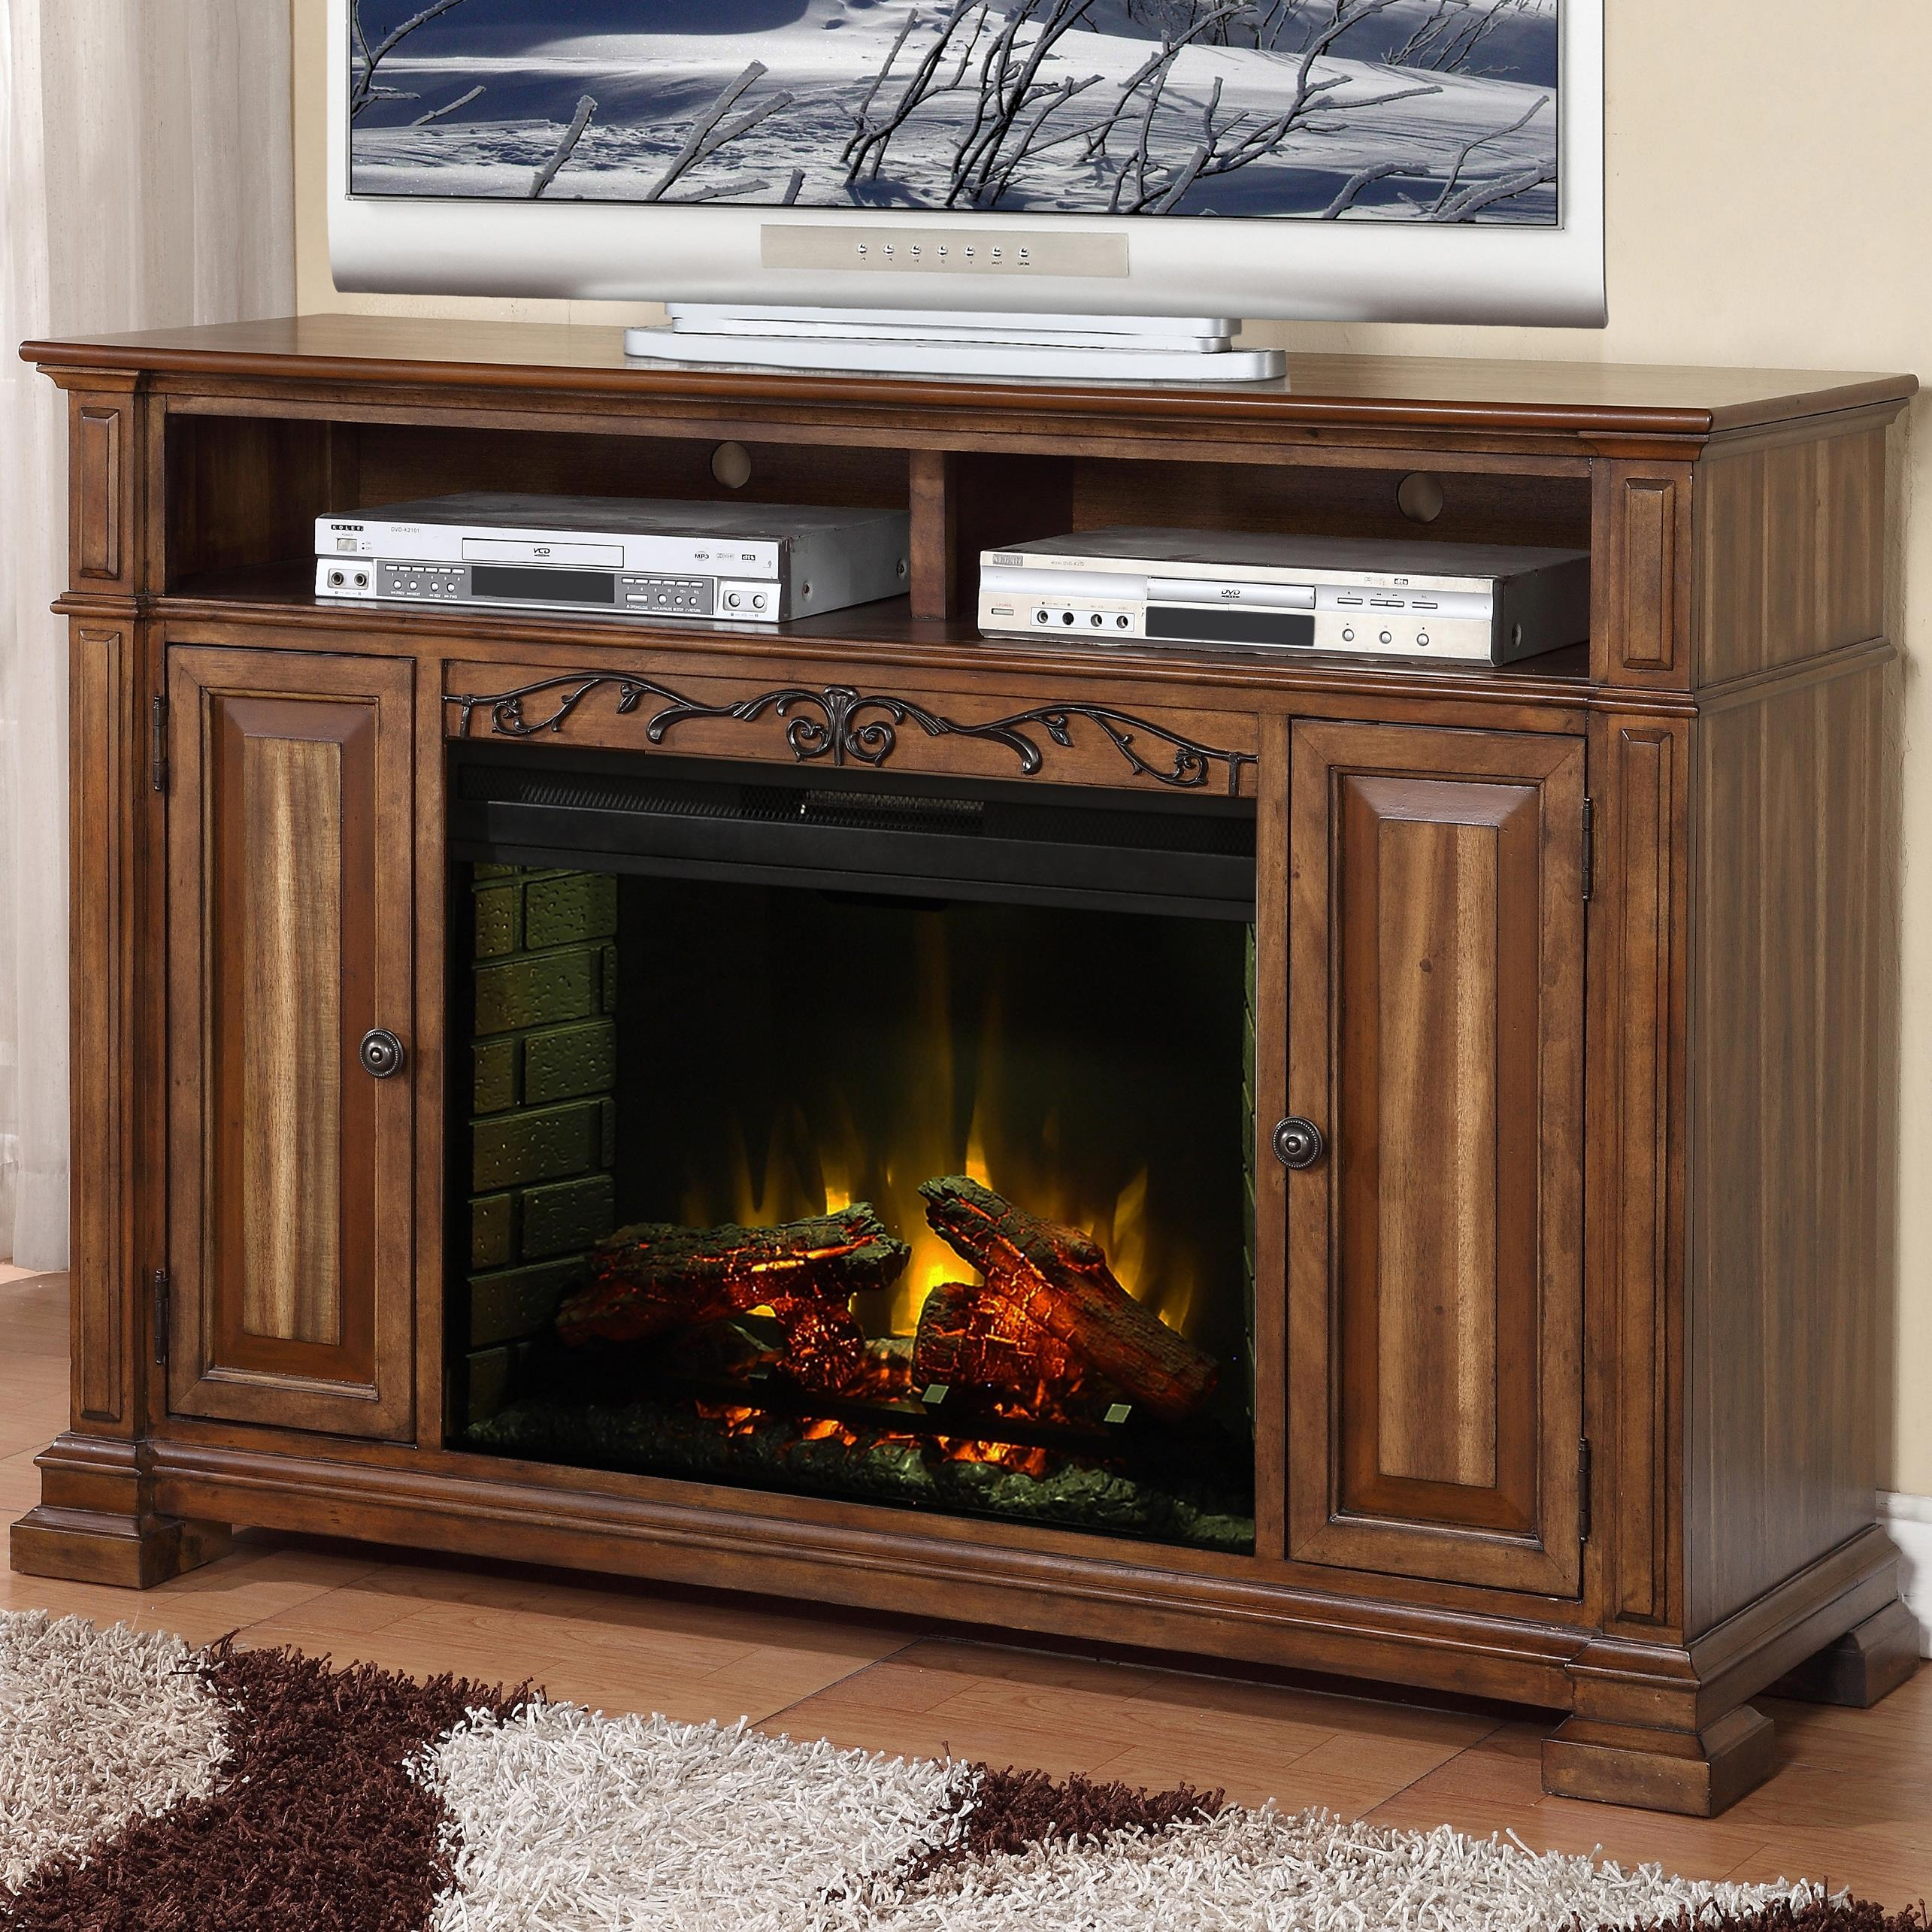 Legends Furniture Barclay ZBCL 1900 Fireplace Media Center